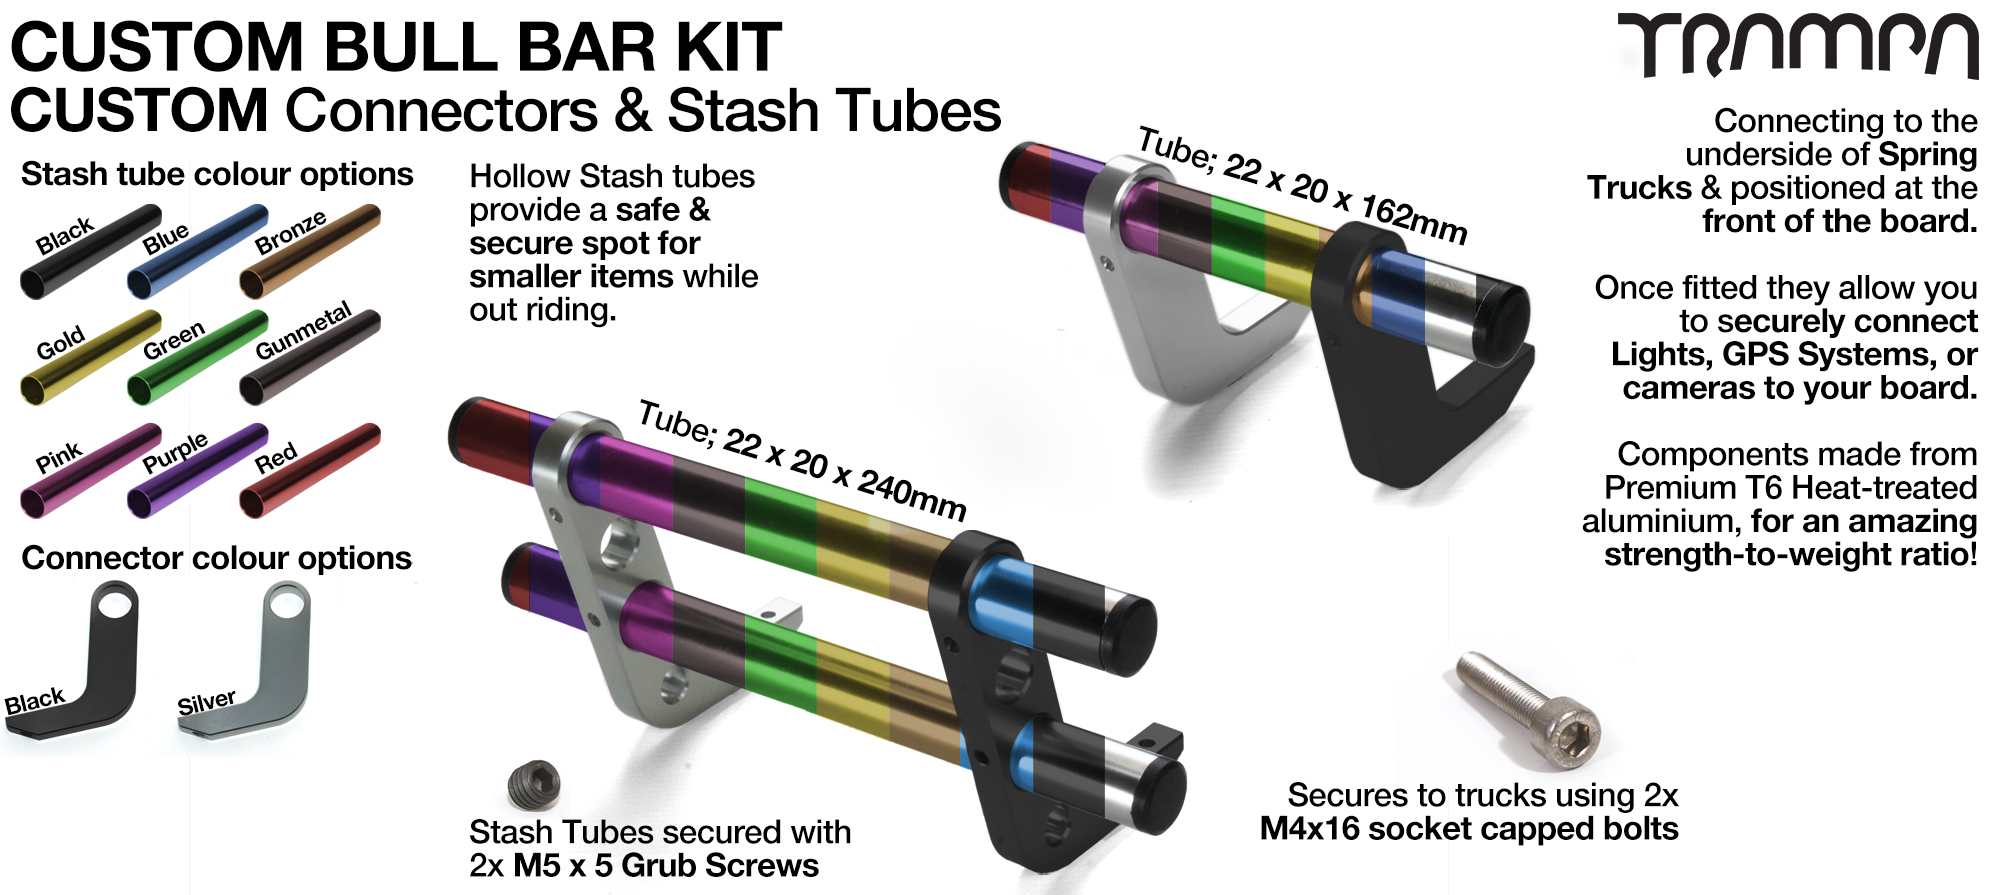 BULL BARS for MOUNTAINBOARDS using T6 Heat Treated CNC'd Aluminum Clamps, Hollow Aluminium Stash Tubes with Rubber end bungs